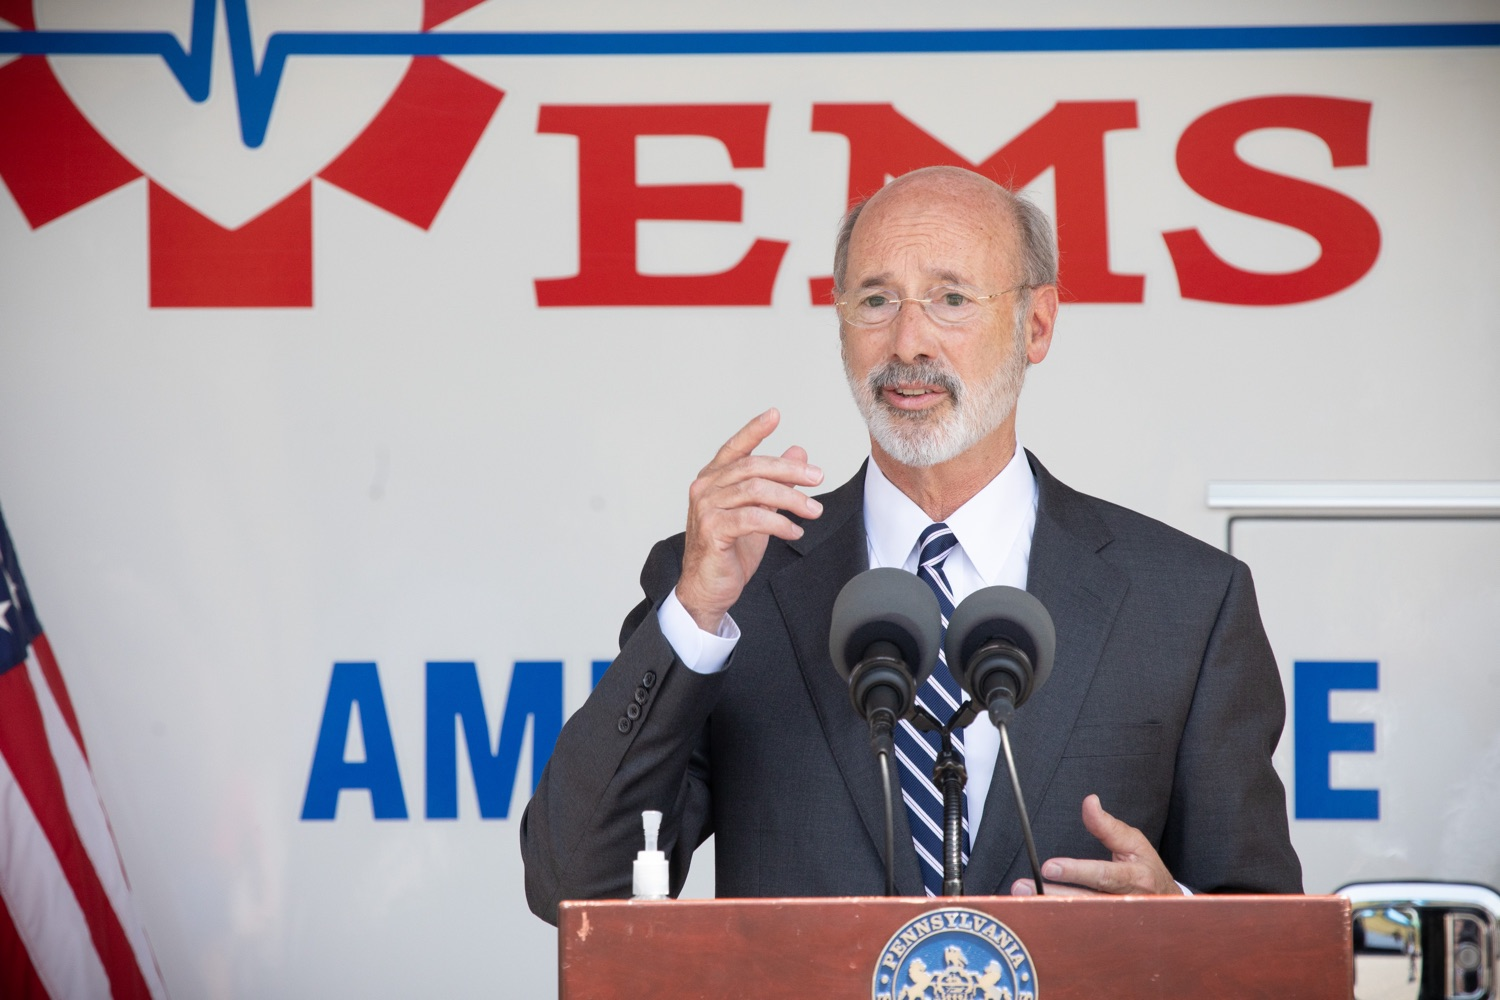 "<a href=""https://filesource.wostreaming.net/commonwealthofpa/photo/18180_gov_first_responders_dz_011.jpg"" target=""_blank"">⇣ Download Photo<br></a>Pennsylvania Governor Tom Wolf speaking to the press. Governor Tom Wolf visited the Millersville location of Lancaster EMS today to thank first responders and learn about how they are adapting their critical work during the states response to the COVID-19 pandemic.  Millersville, PA  July 30, 2020"